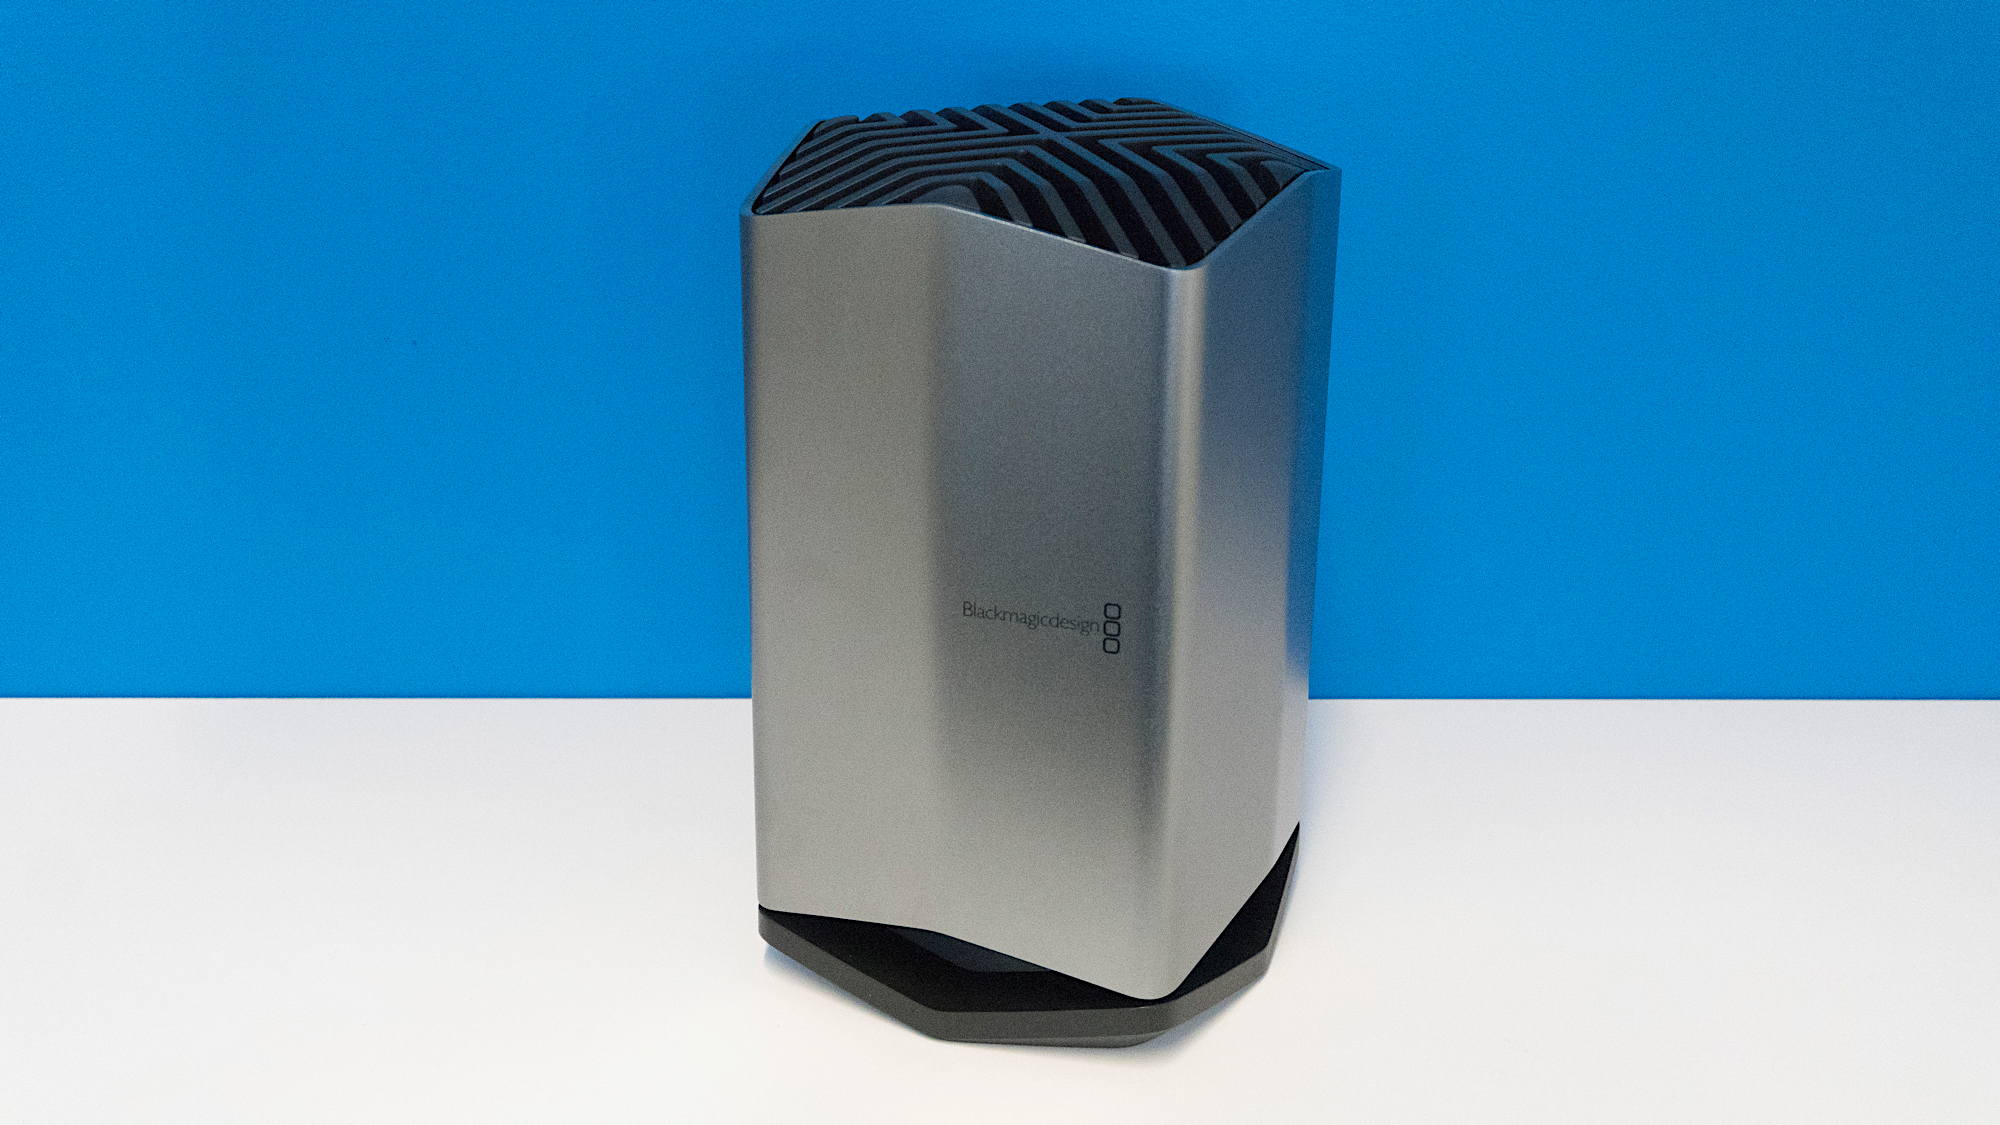 Blackmagic Egpu Review Too Much Frustration For Too Little Benefit